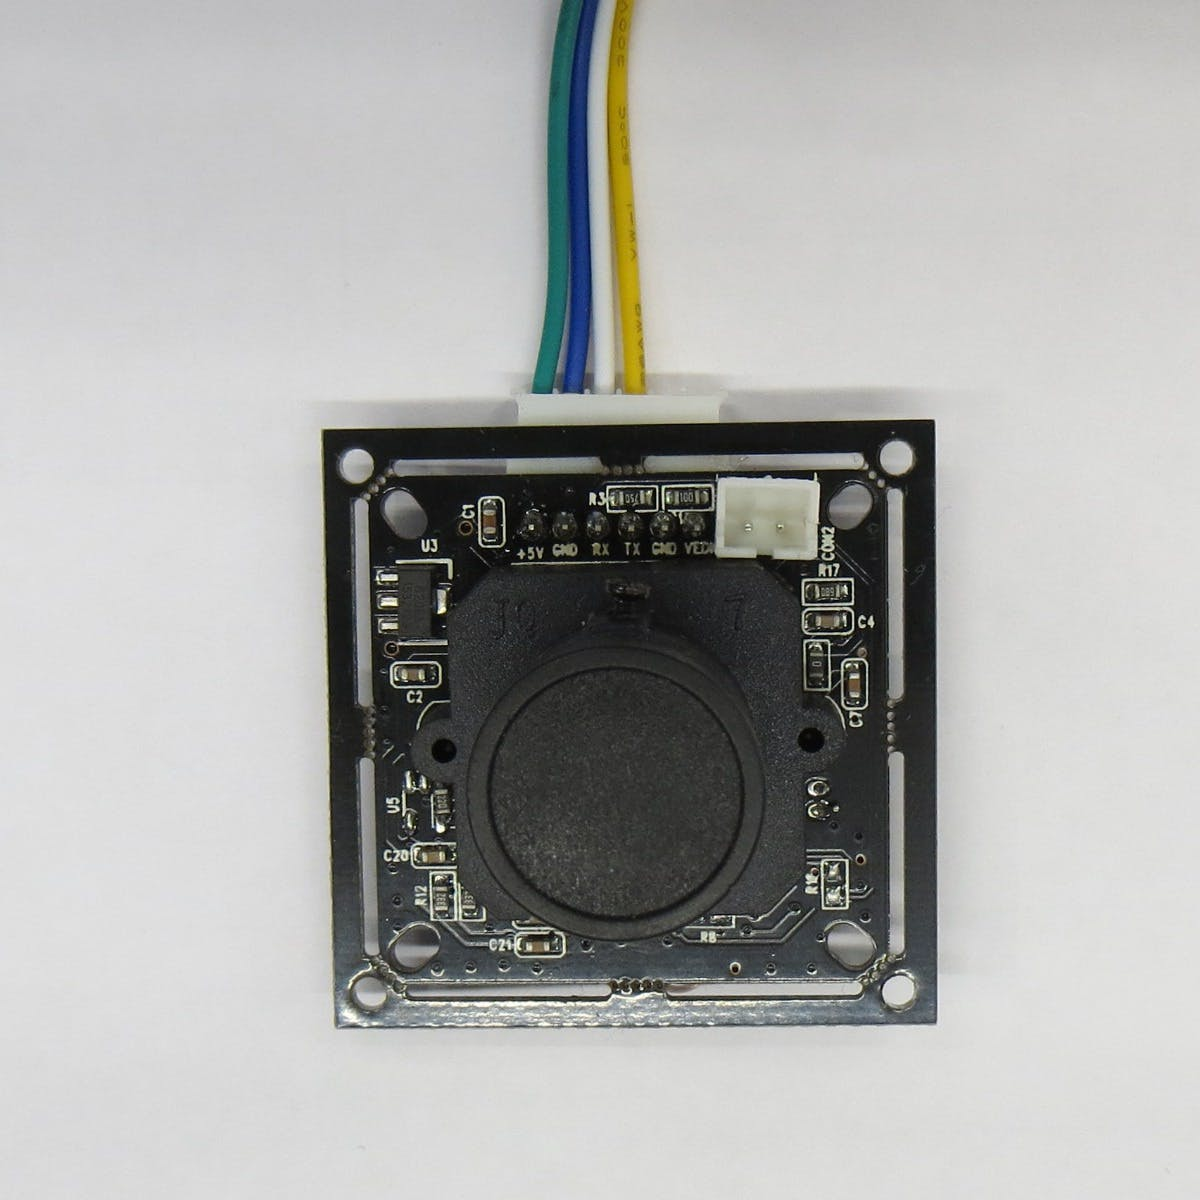 Figure 13. VC0706 Camera (with cable).